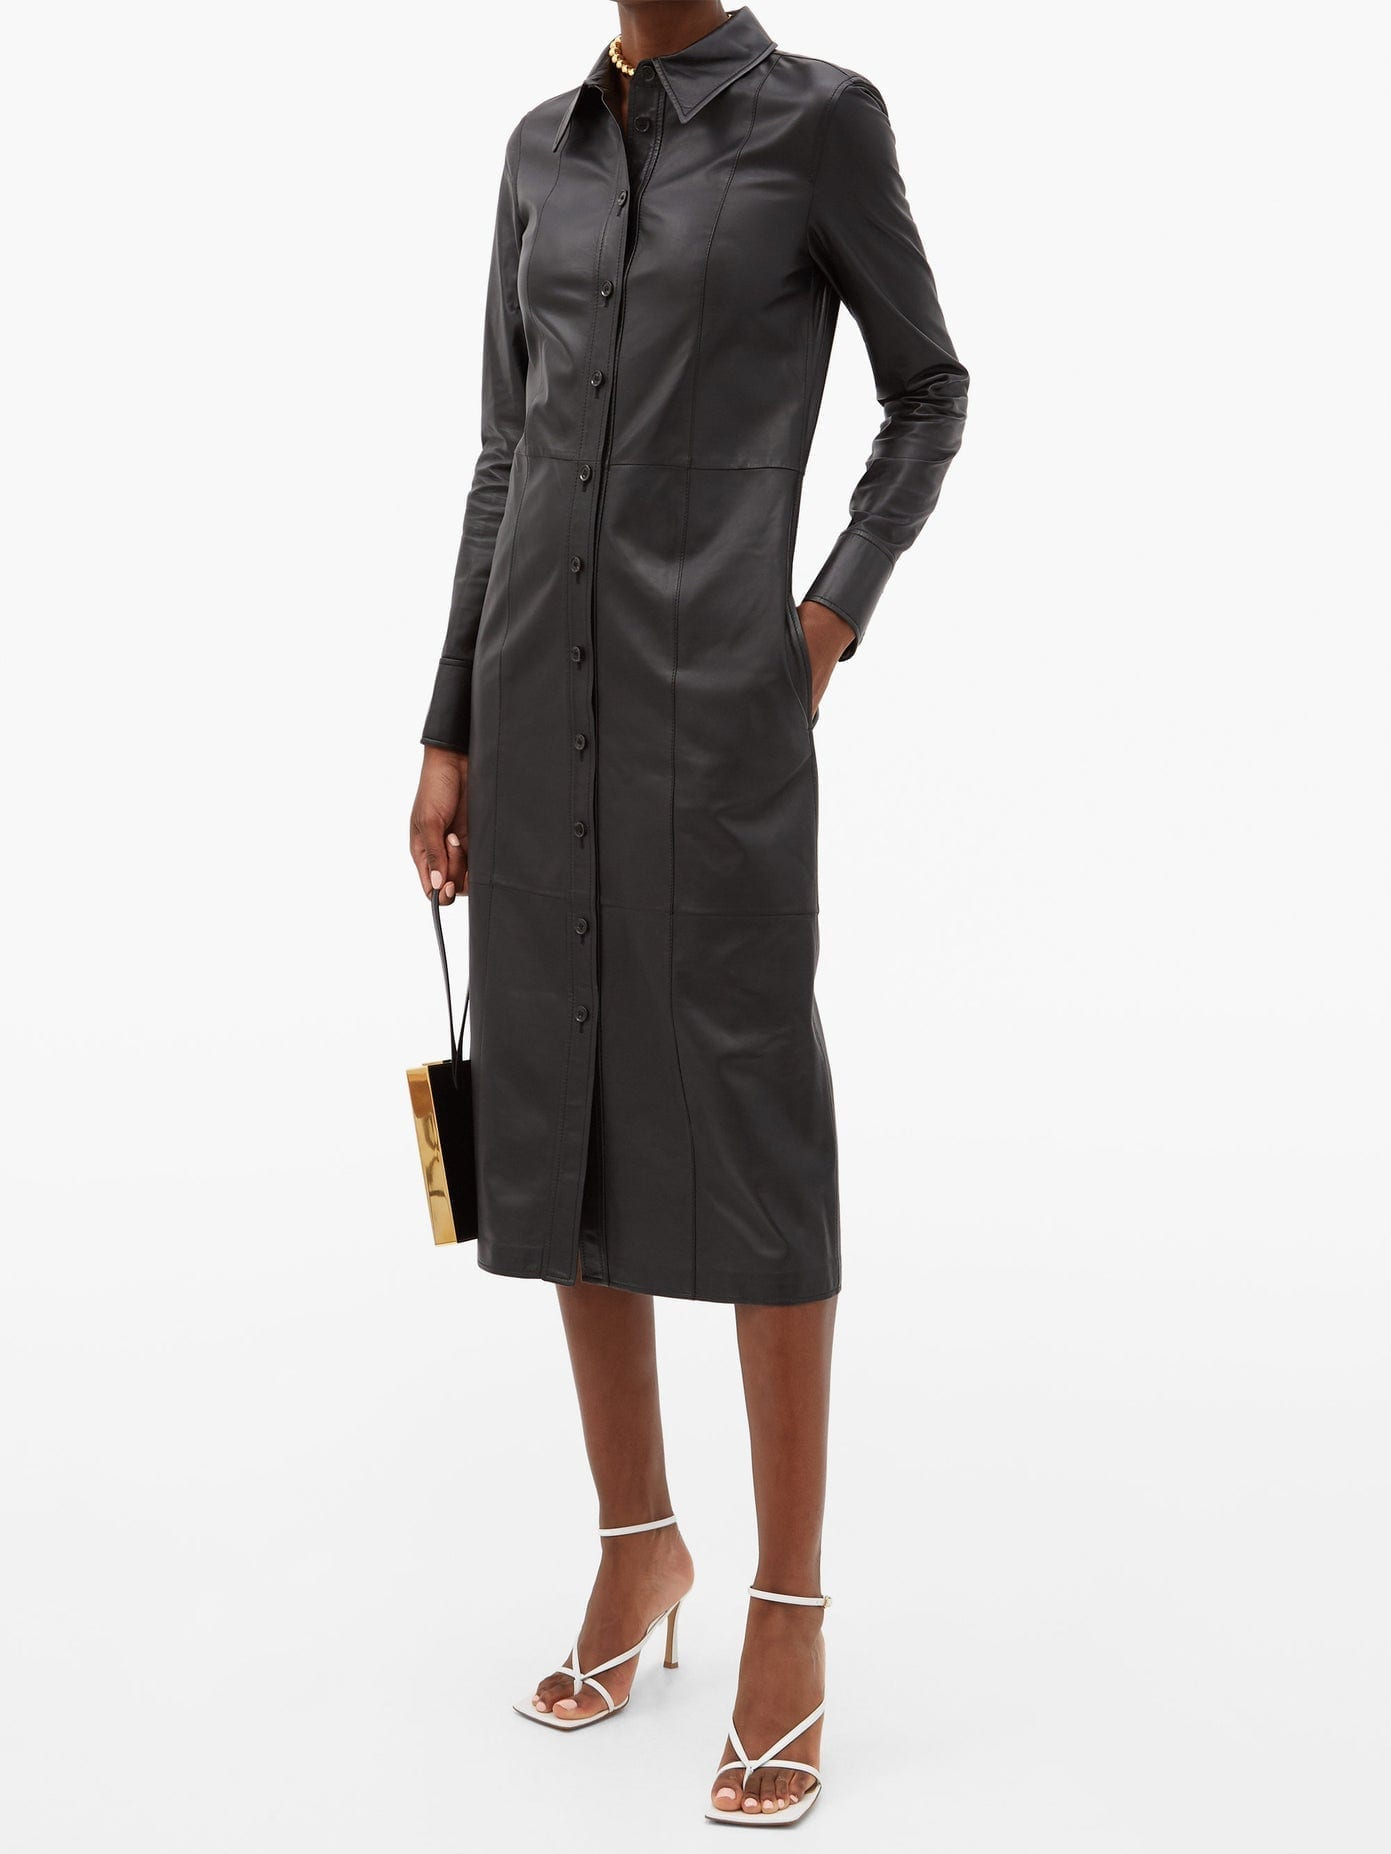 PROENZA SCHOULER Leather Midi Shirt Dress